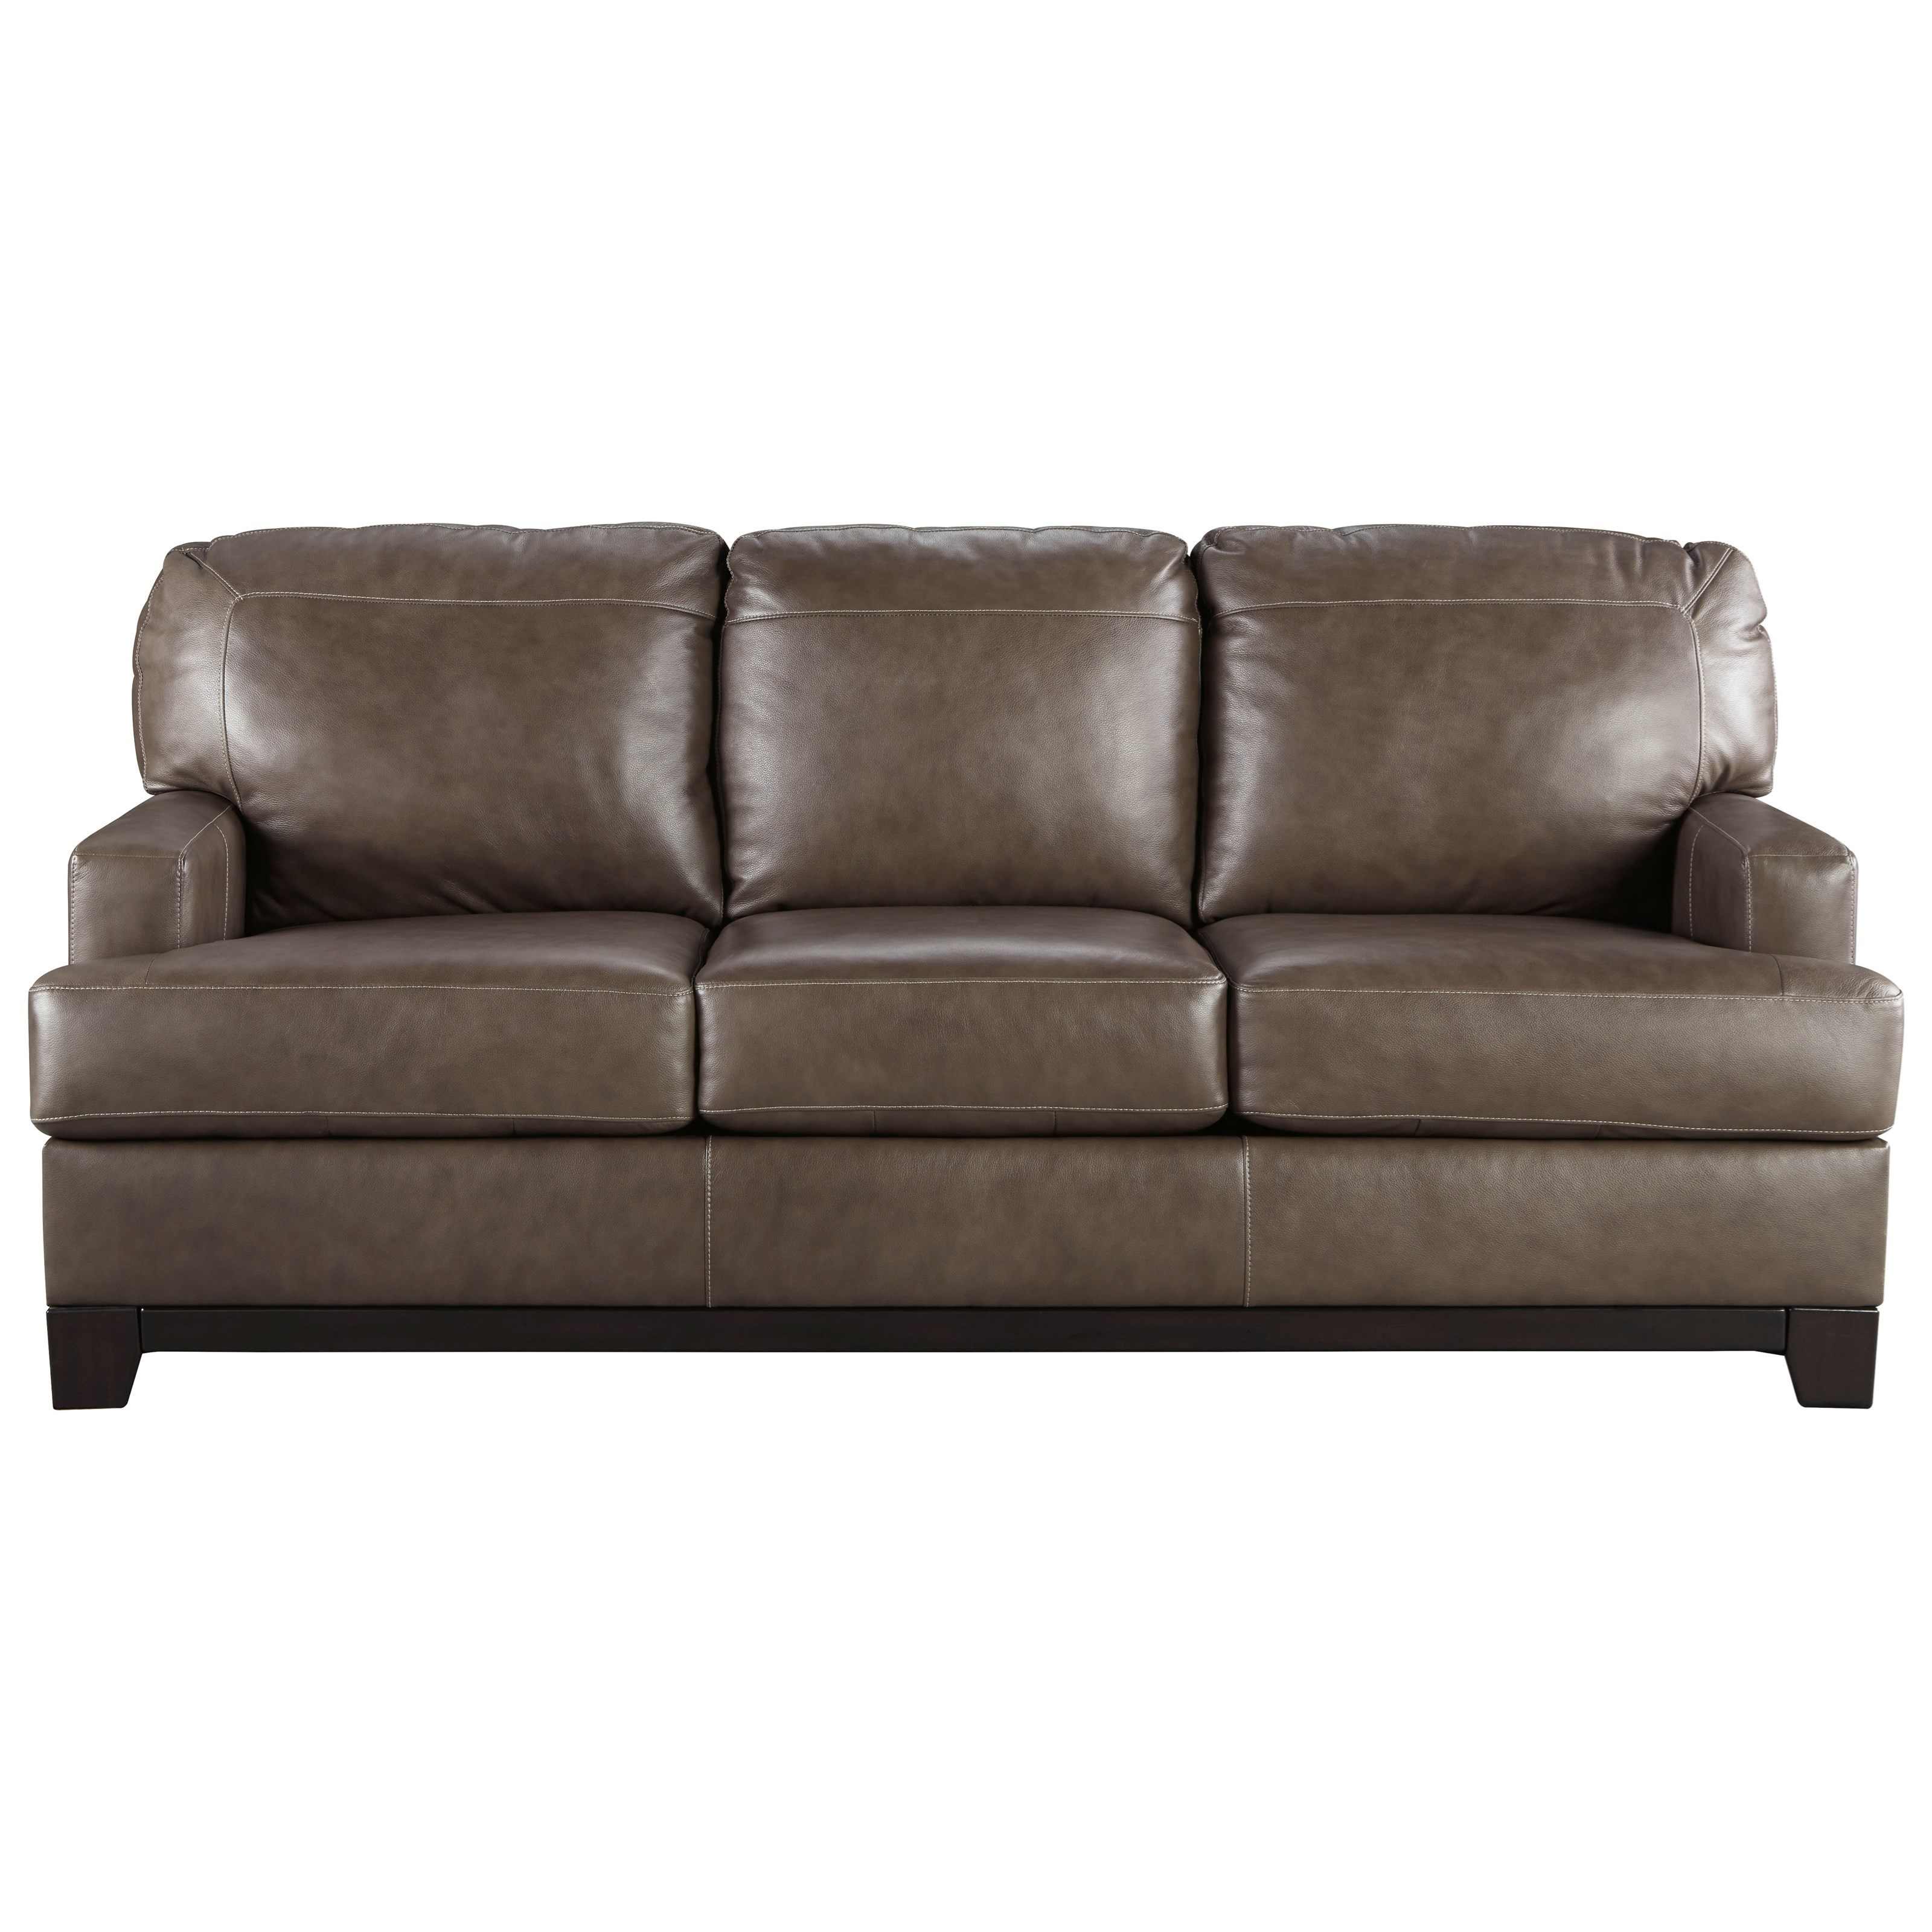 Queen Sofa Bed Derwood Contemporary Leather Match Queen Sofa Sleeper By Signature Design By Ashley At Rotmans